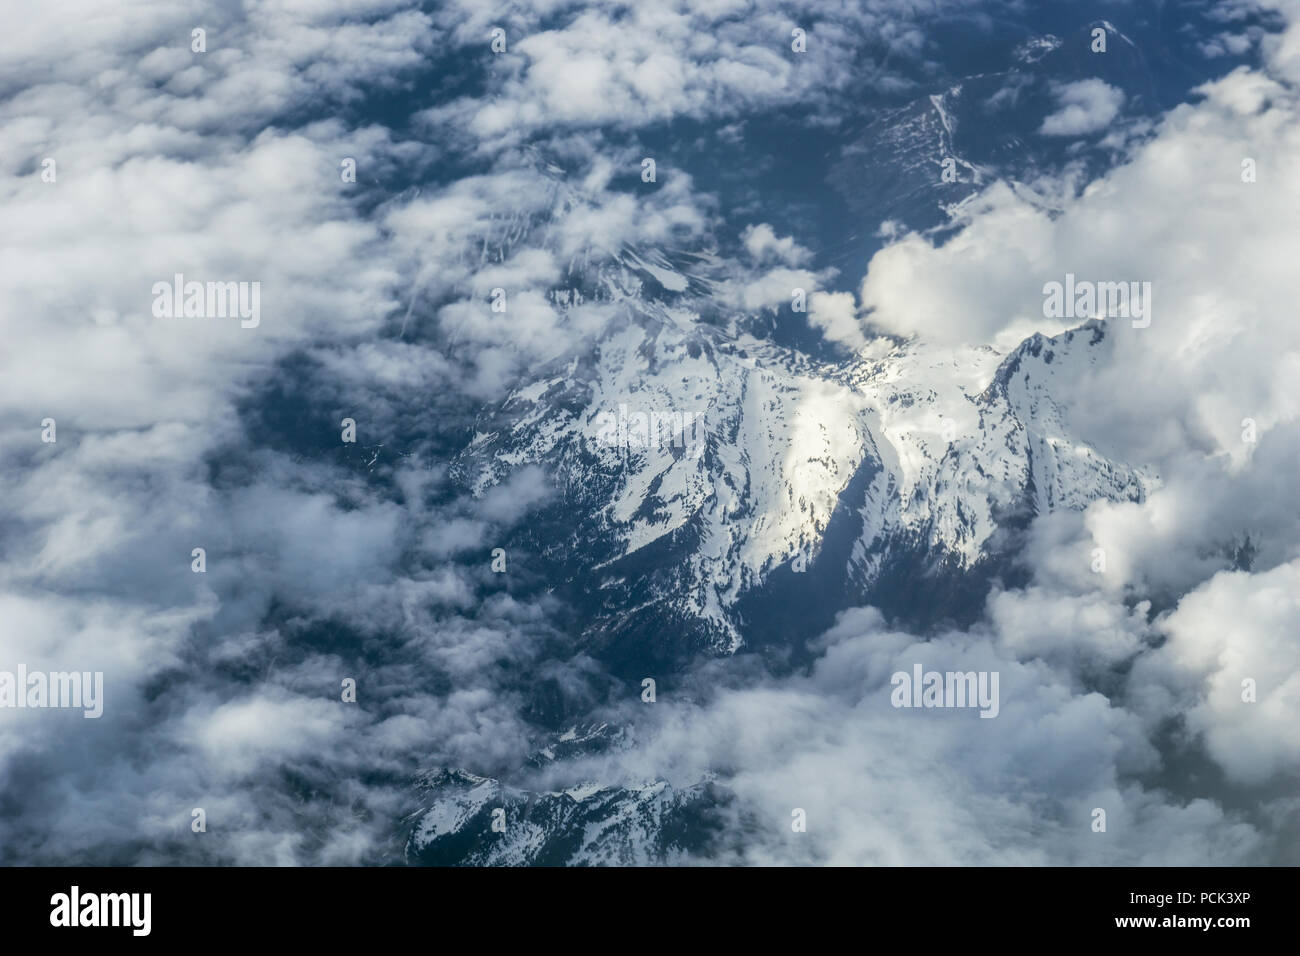 Aerial view of the Selkirk mountains between Naskup, Creston, Cranbrook and Invermere, Central Kootenay H, BC, Canada. - Stock Image